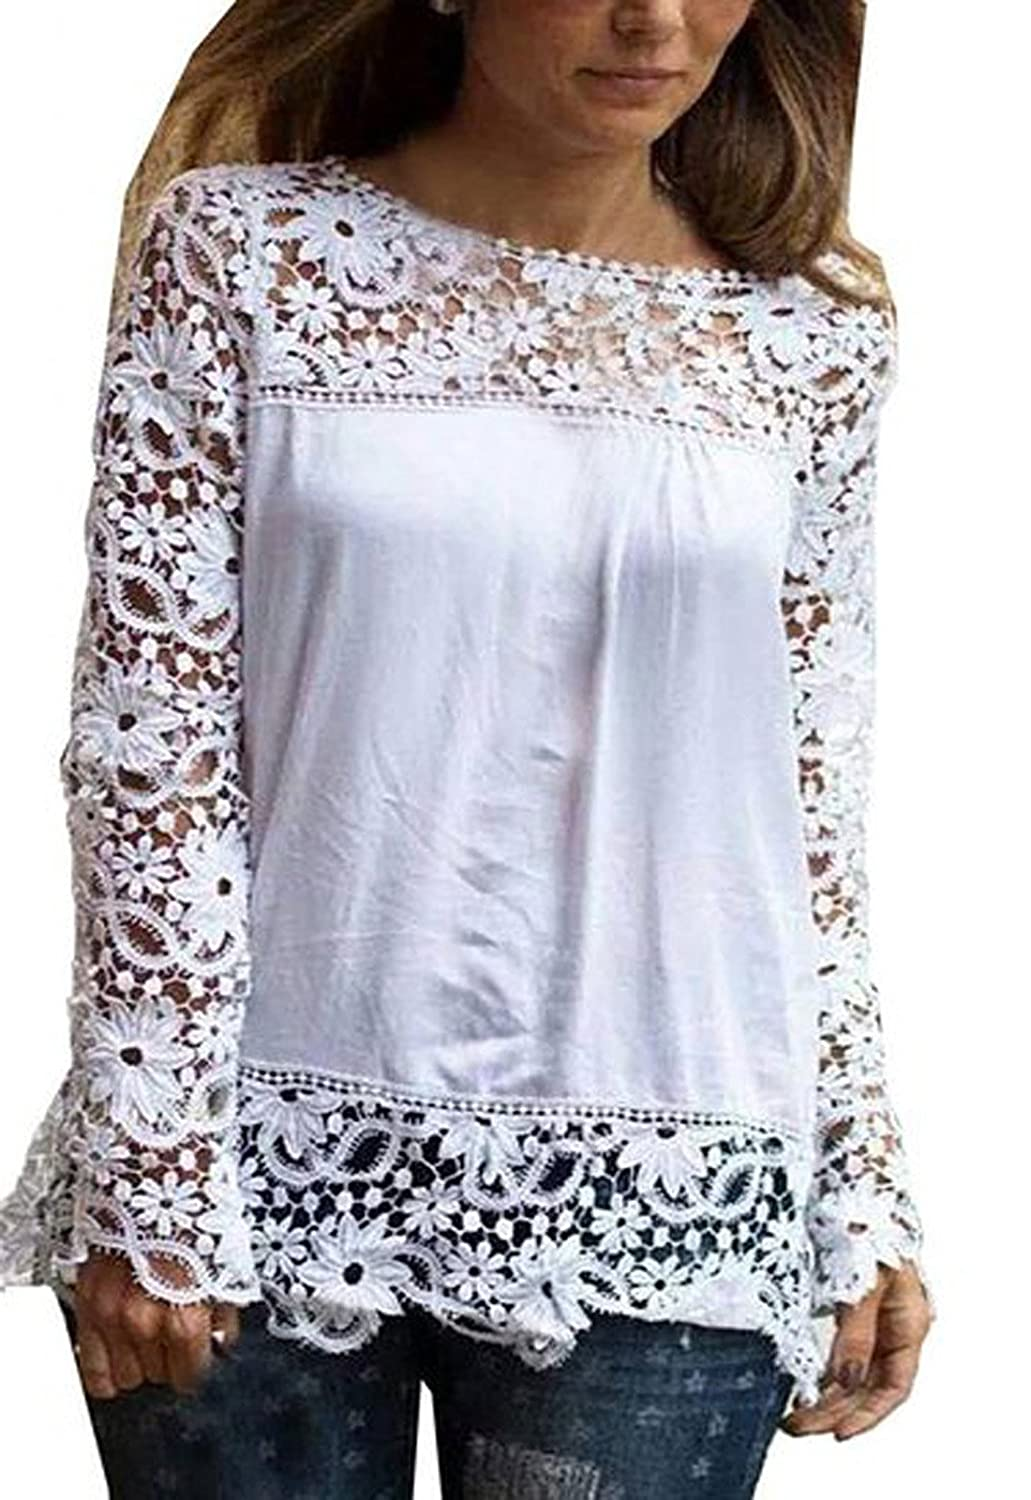 Benjour Women Autumn Hollow Long Sleeve Lace Chiffon T-shirt Tops Casual Blouses [NN6617] -(White-XX-Large)